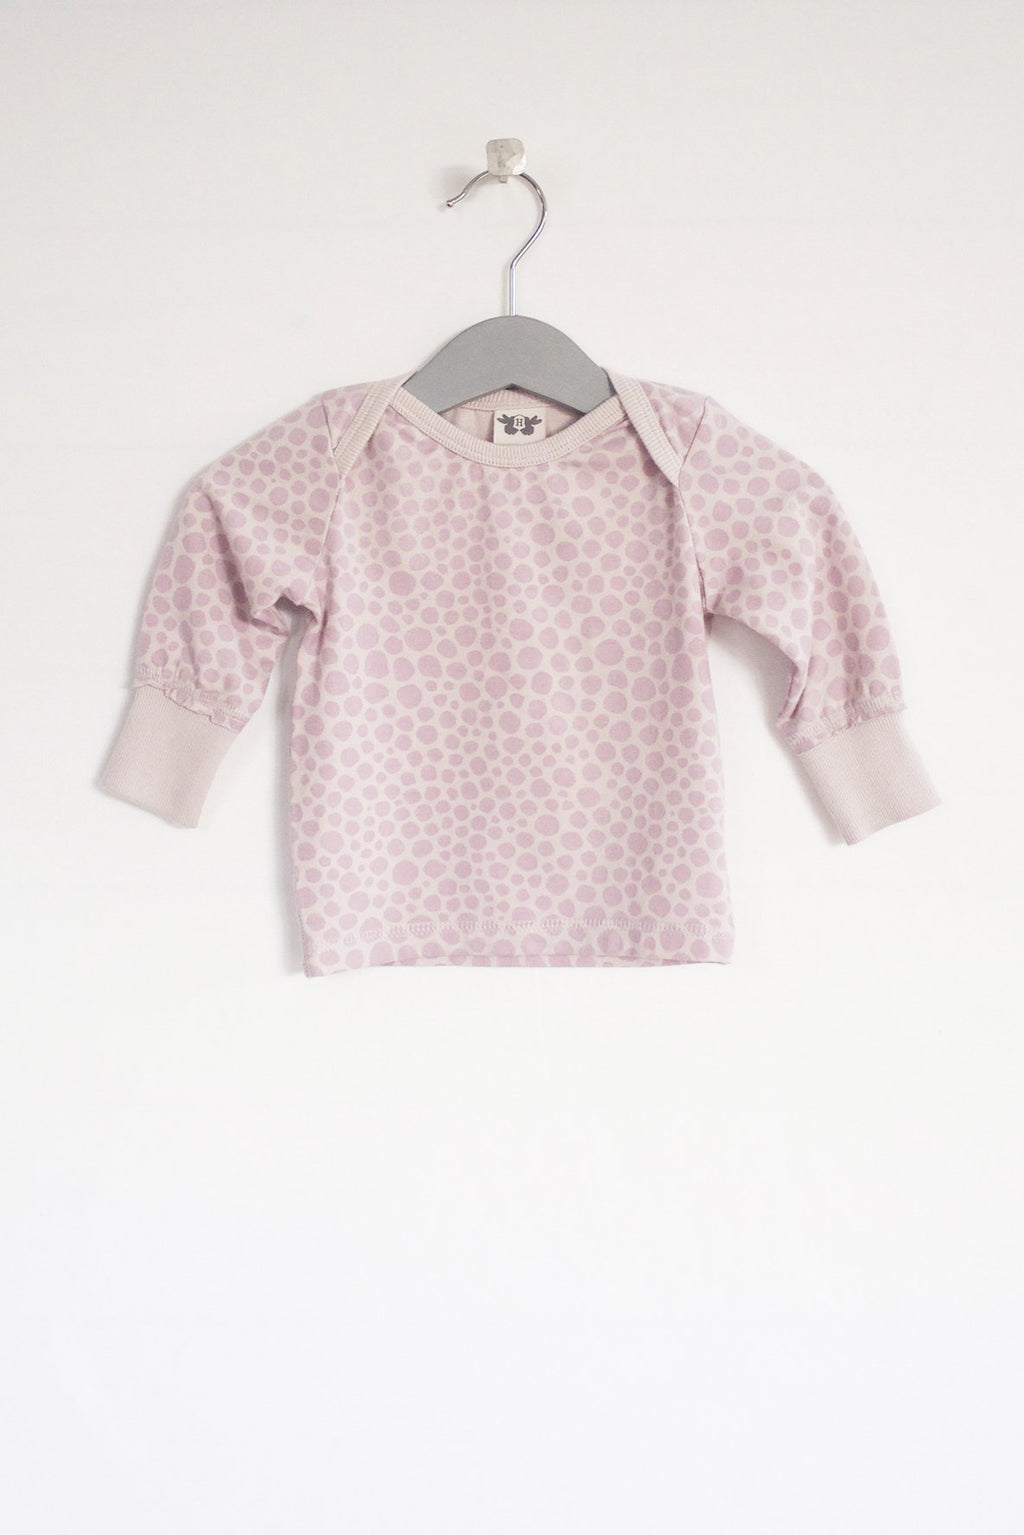 ELLIOT long sleeve top - print pink